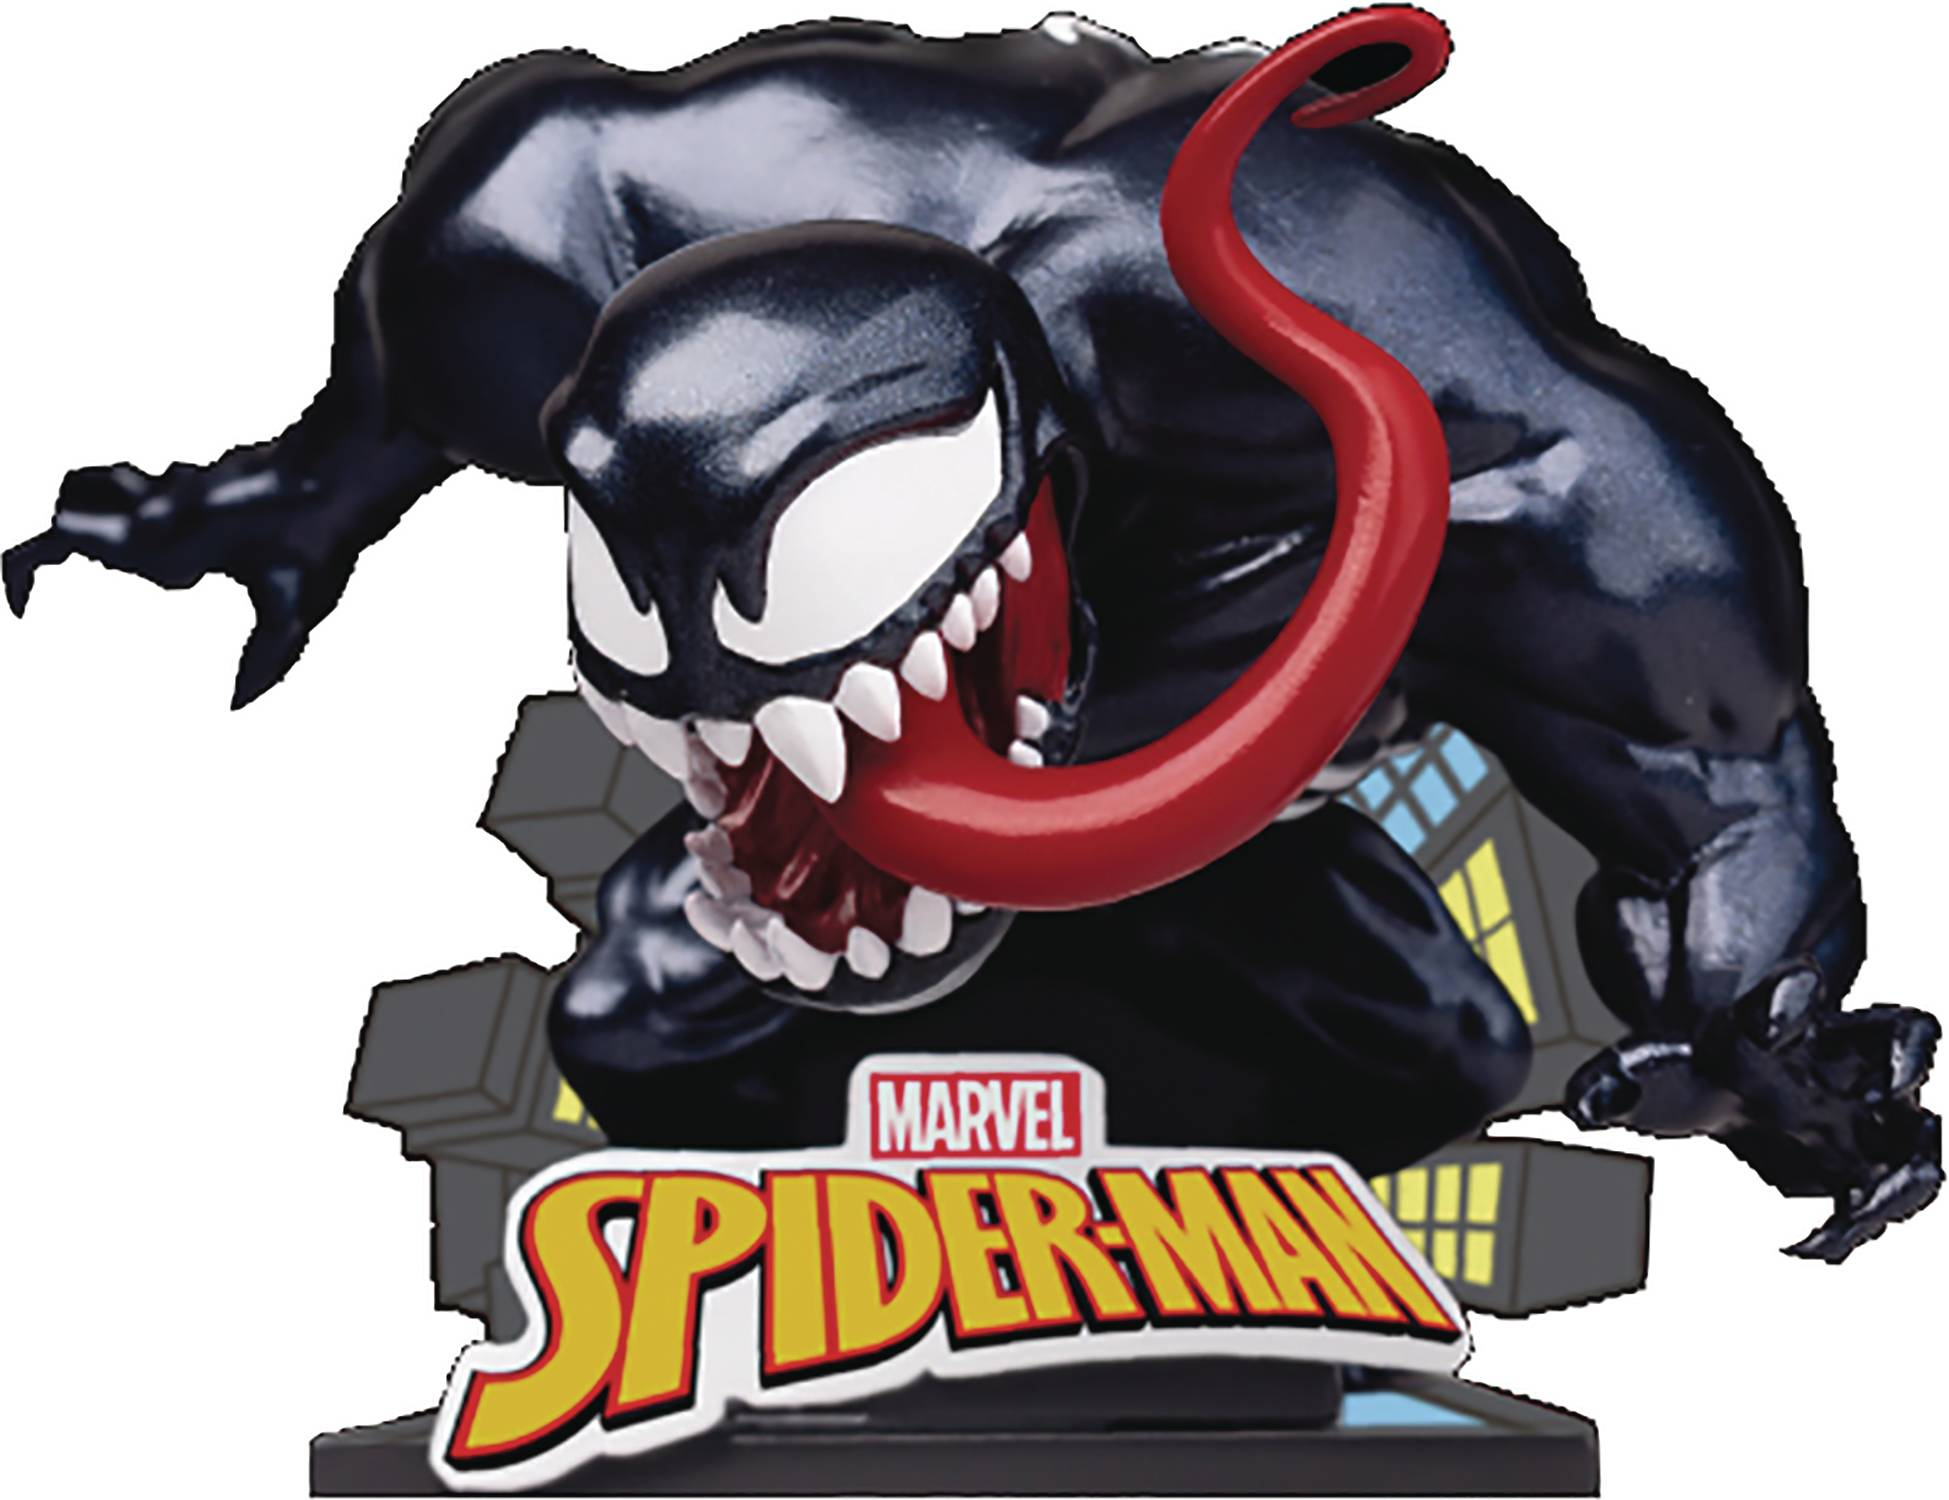 MARVEL COMICS MEA-013 VENOM PX FIG